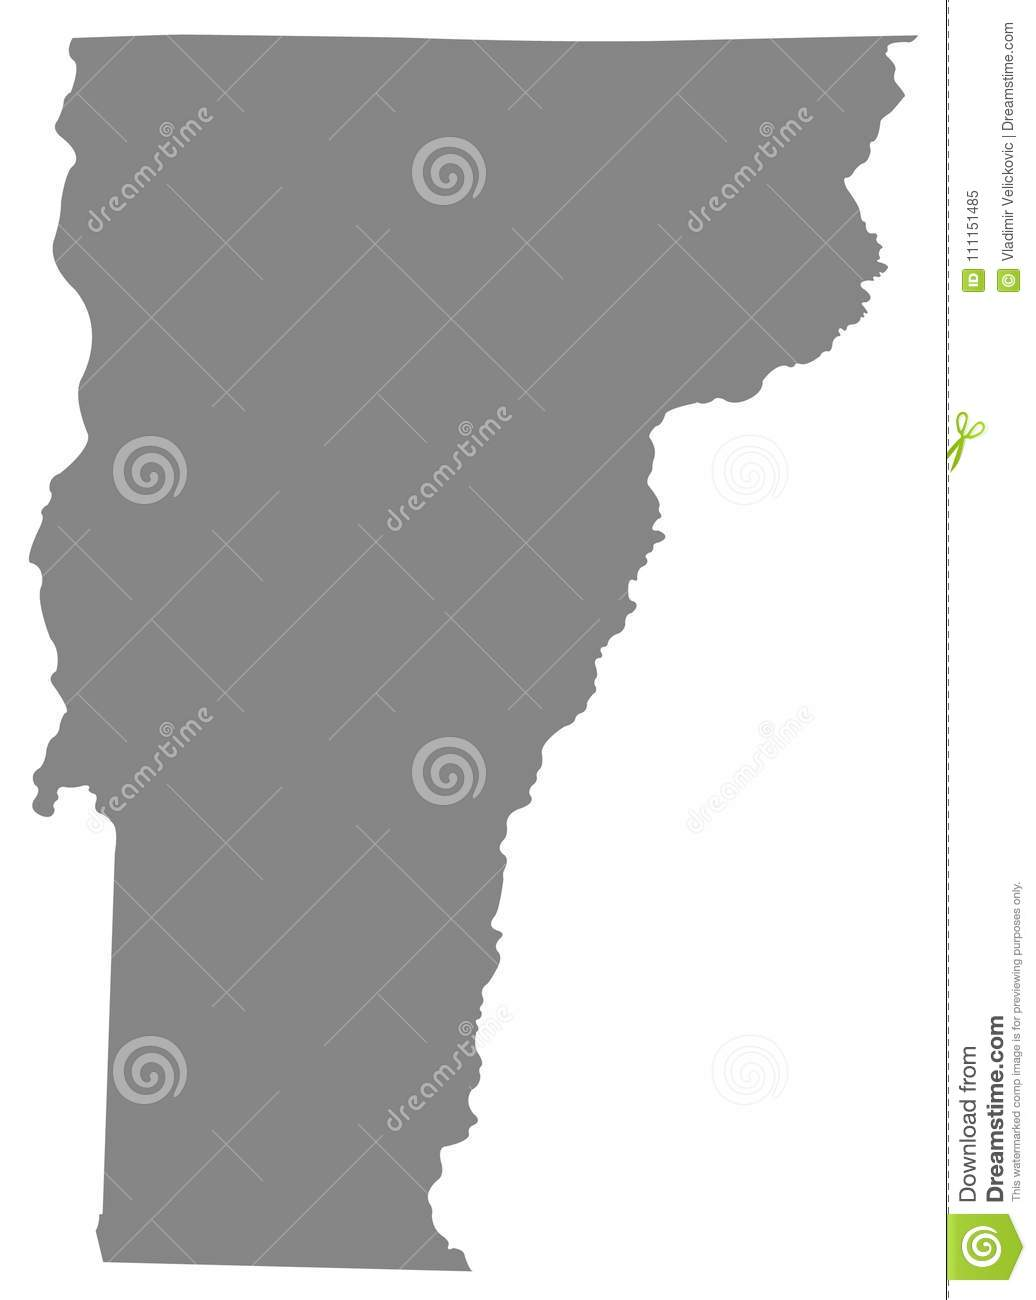 Map Of America Vermont.Vermont Map State In The New England Region Of The Northeastern